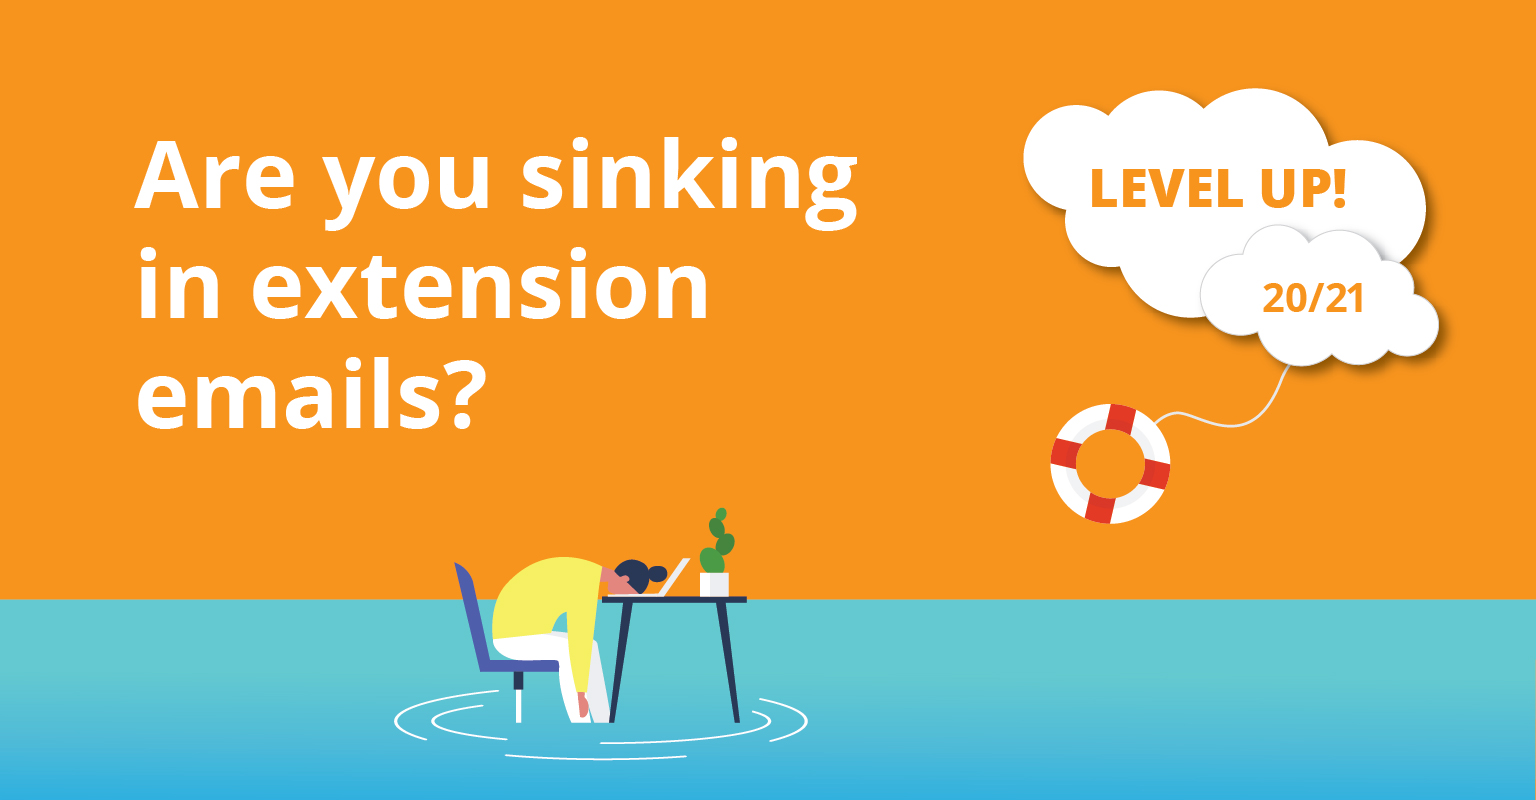 Are you sinking in extension emails?